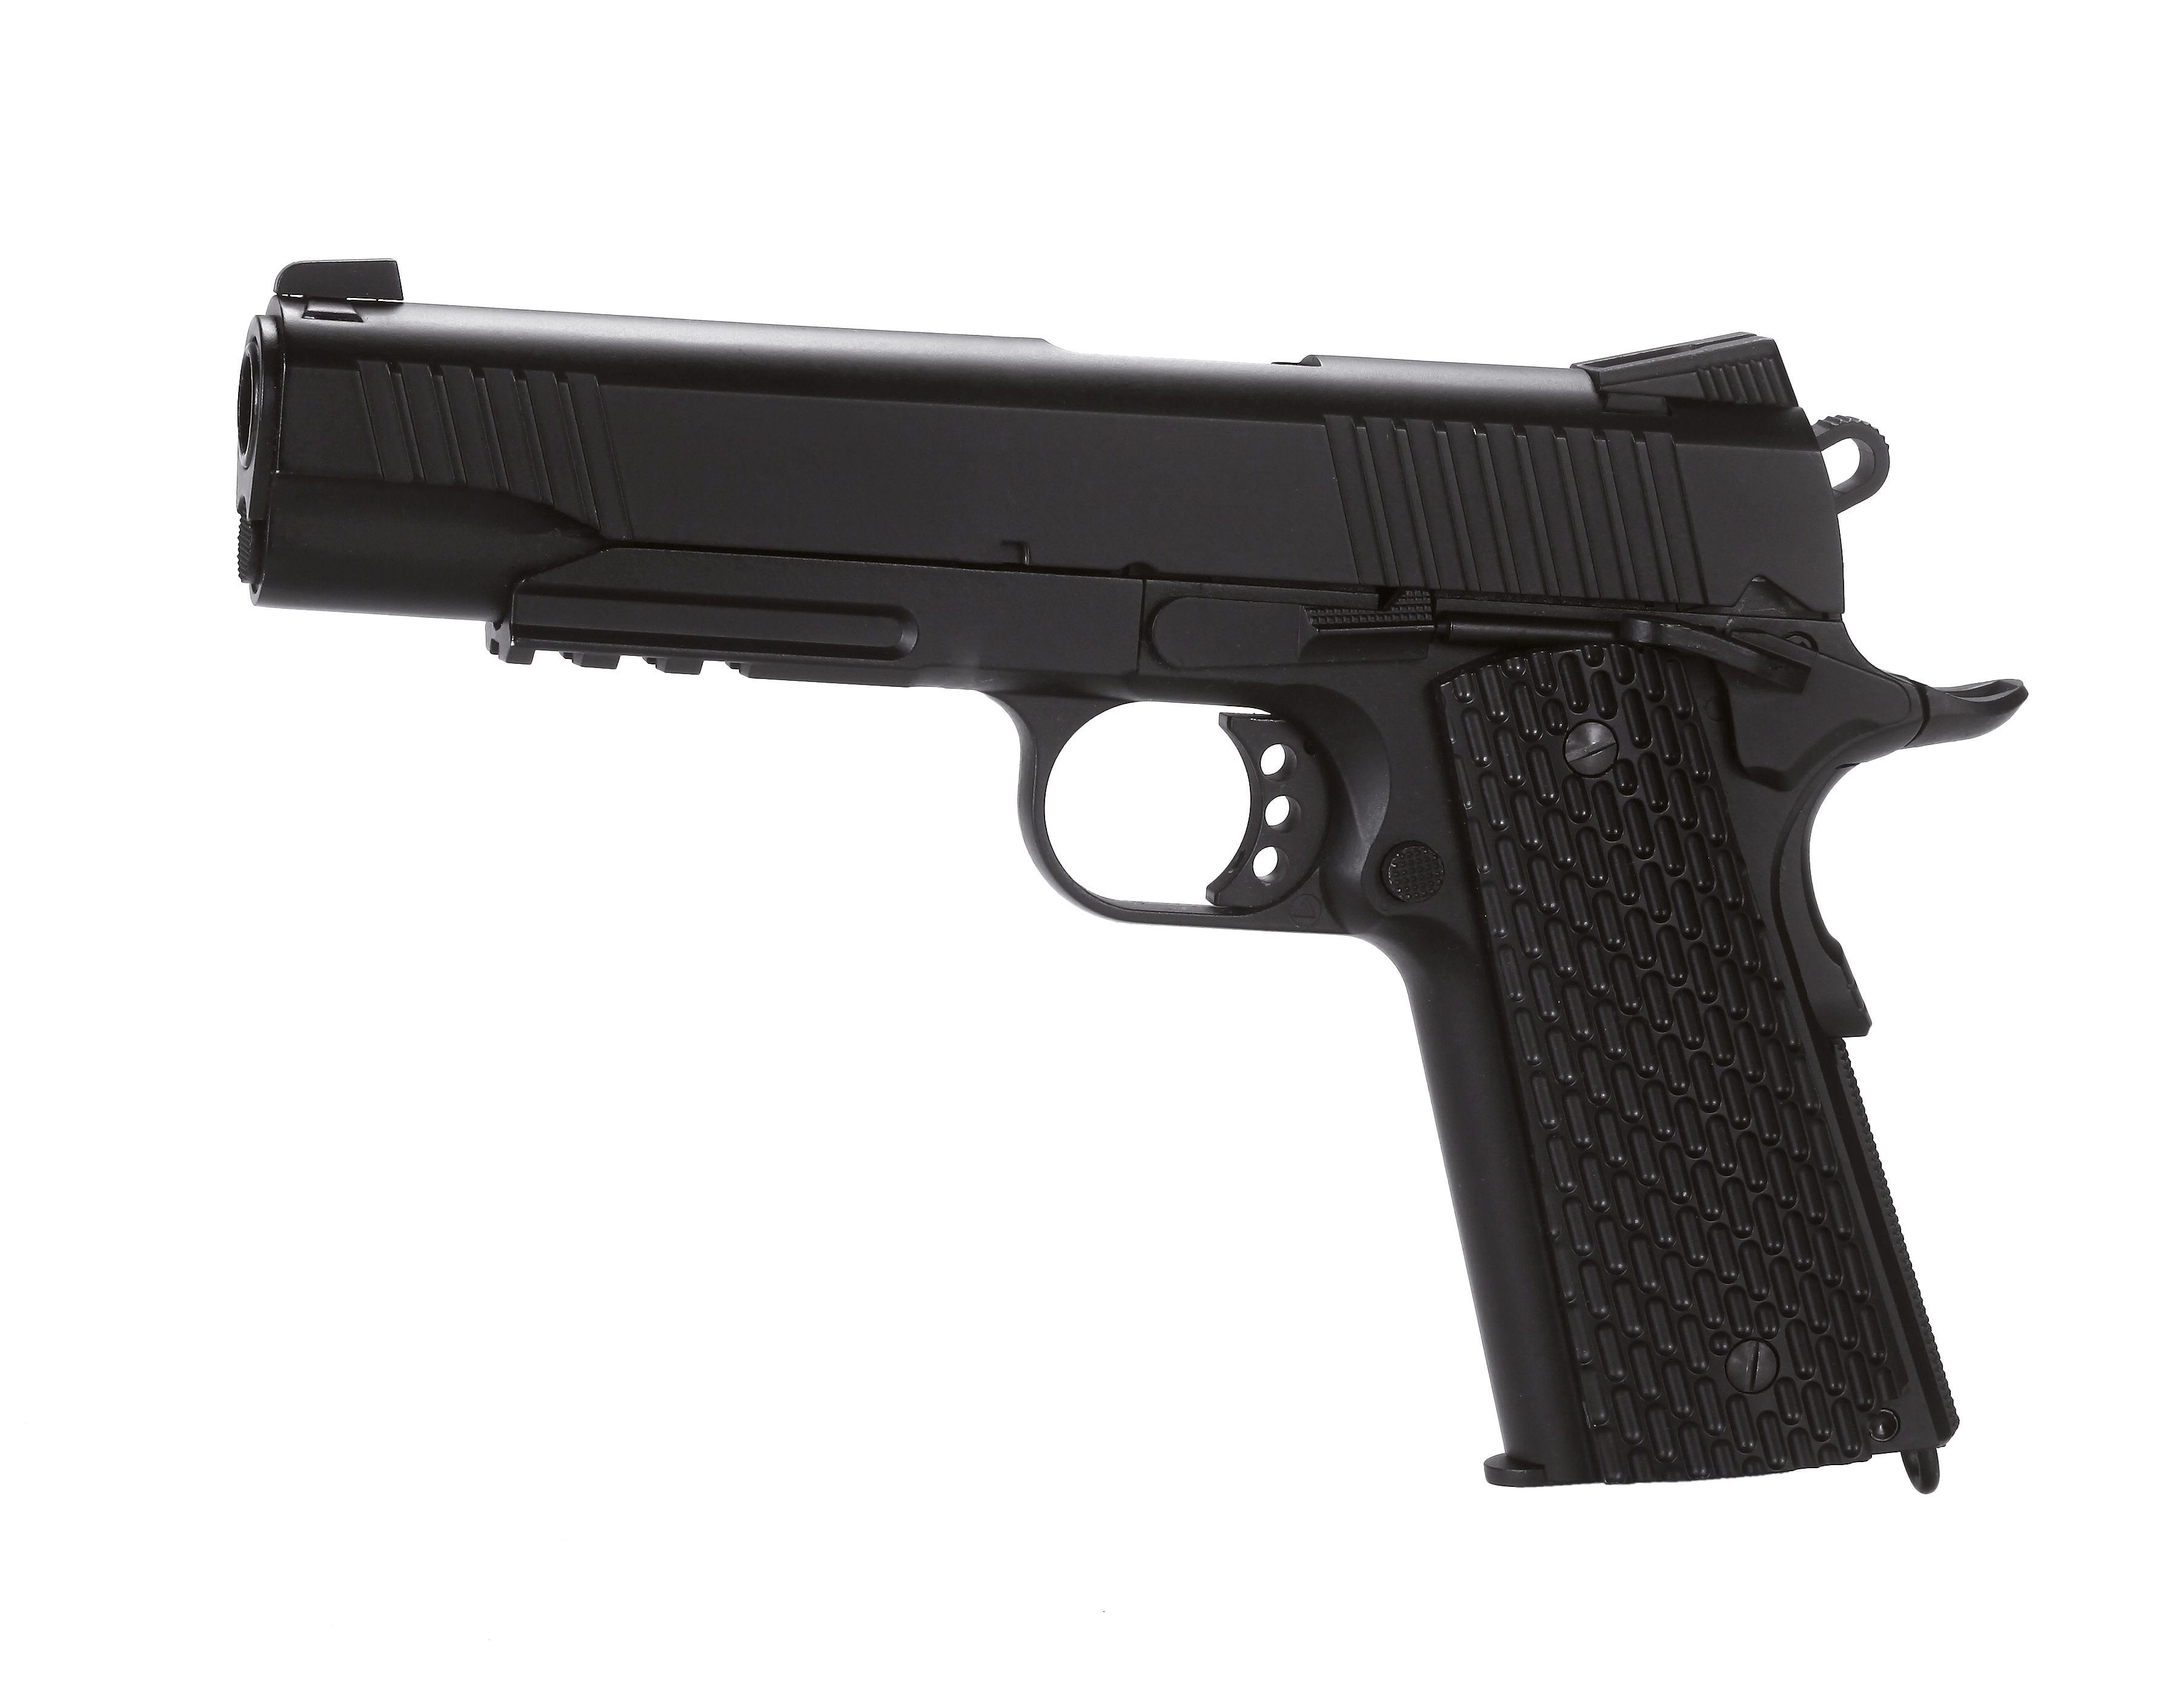 Pistola 1911T BLOW BACK CO2 4.5 FULL METAL KMB-77AHN